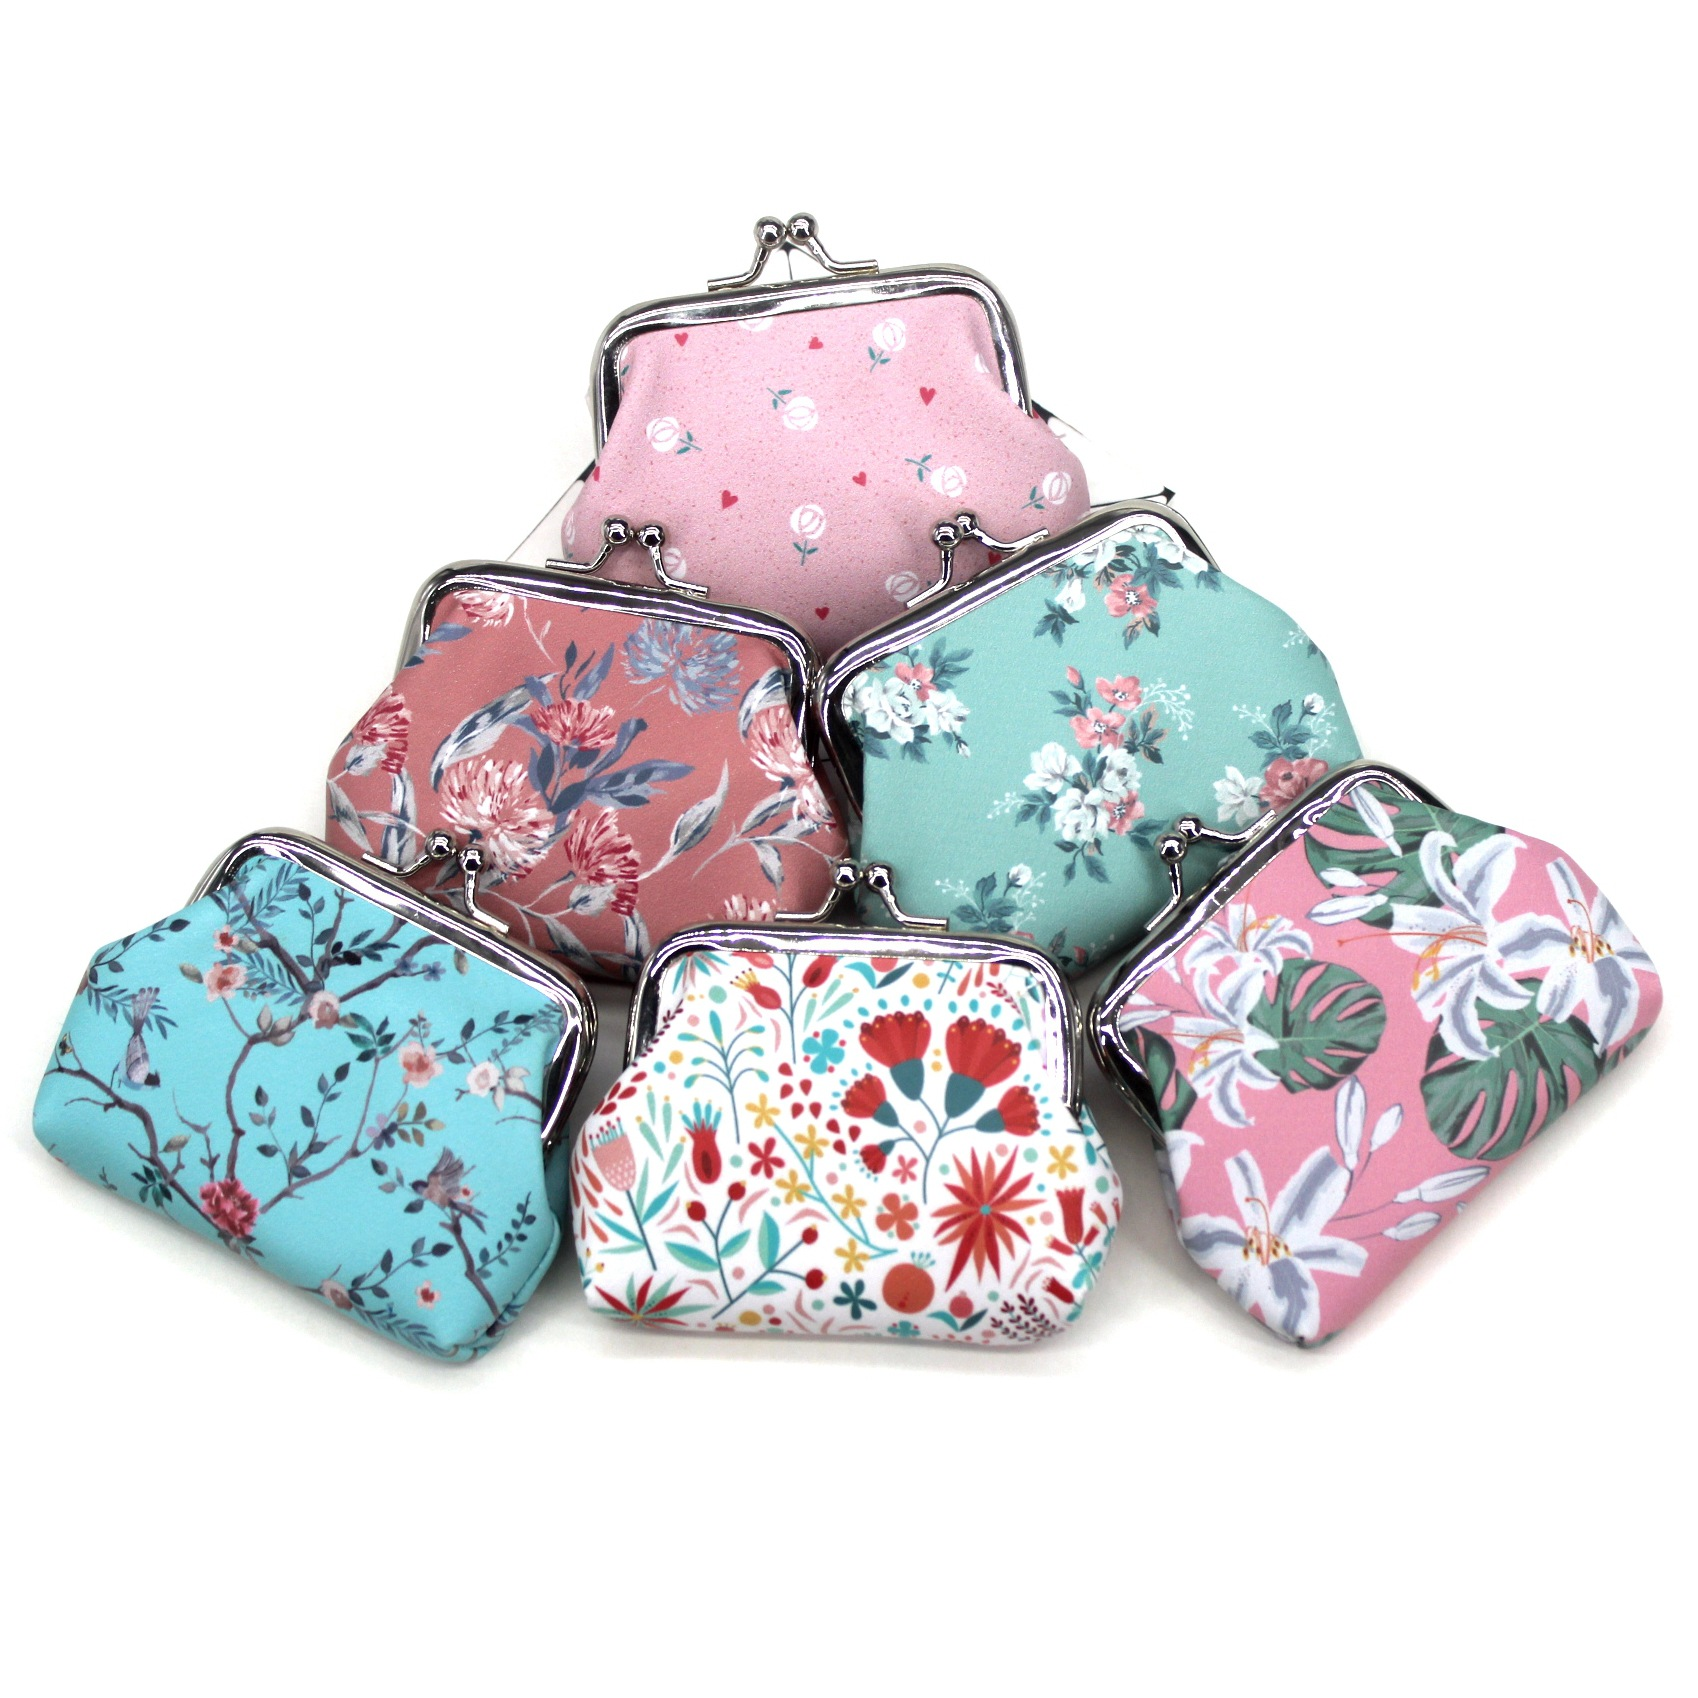 Girls Coin Purses Women Printing Mini Wallets Kids Cute Hasp Money Bag Ladies Clutch Change Purse Children Pouch Female Carteira